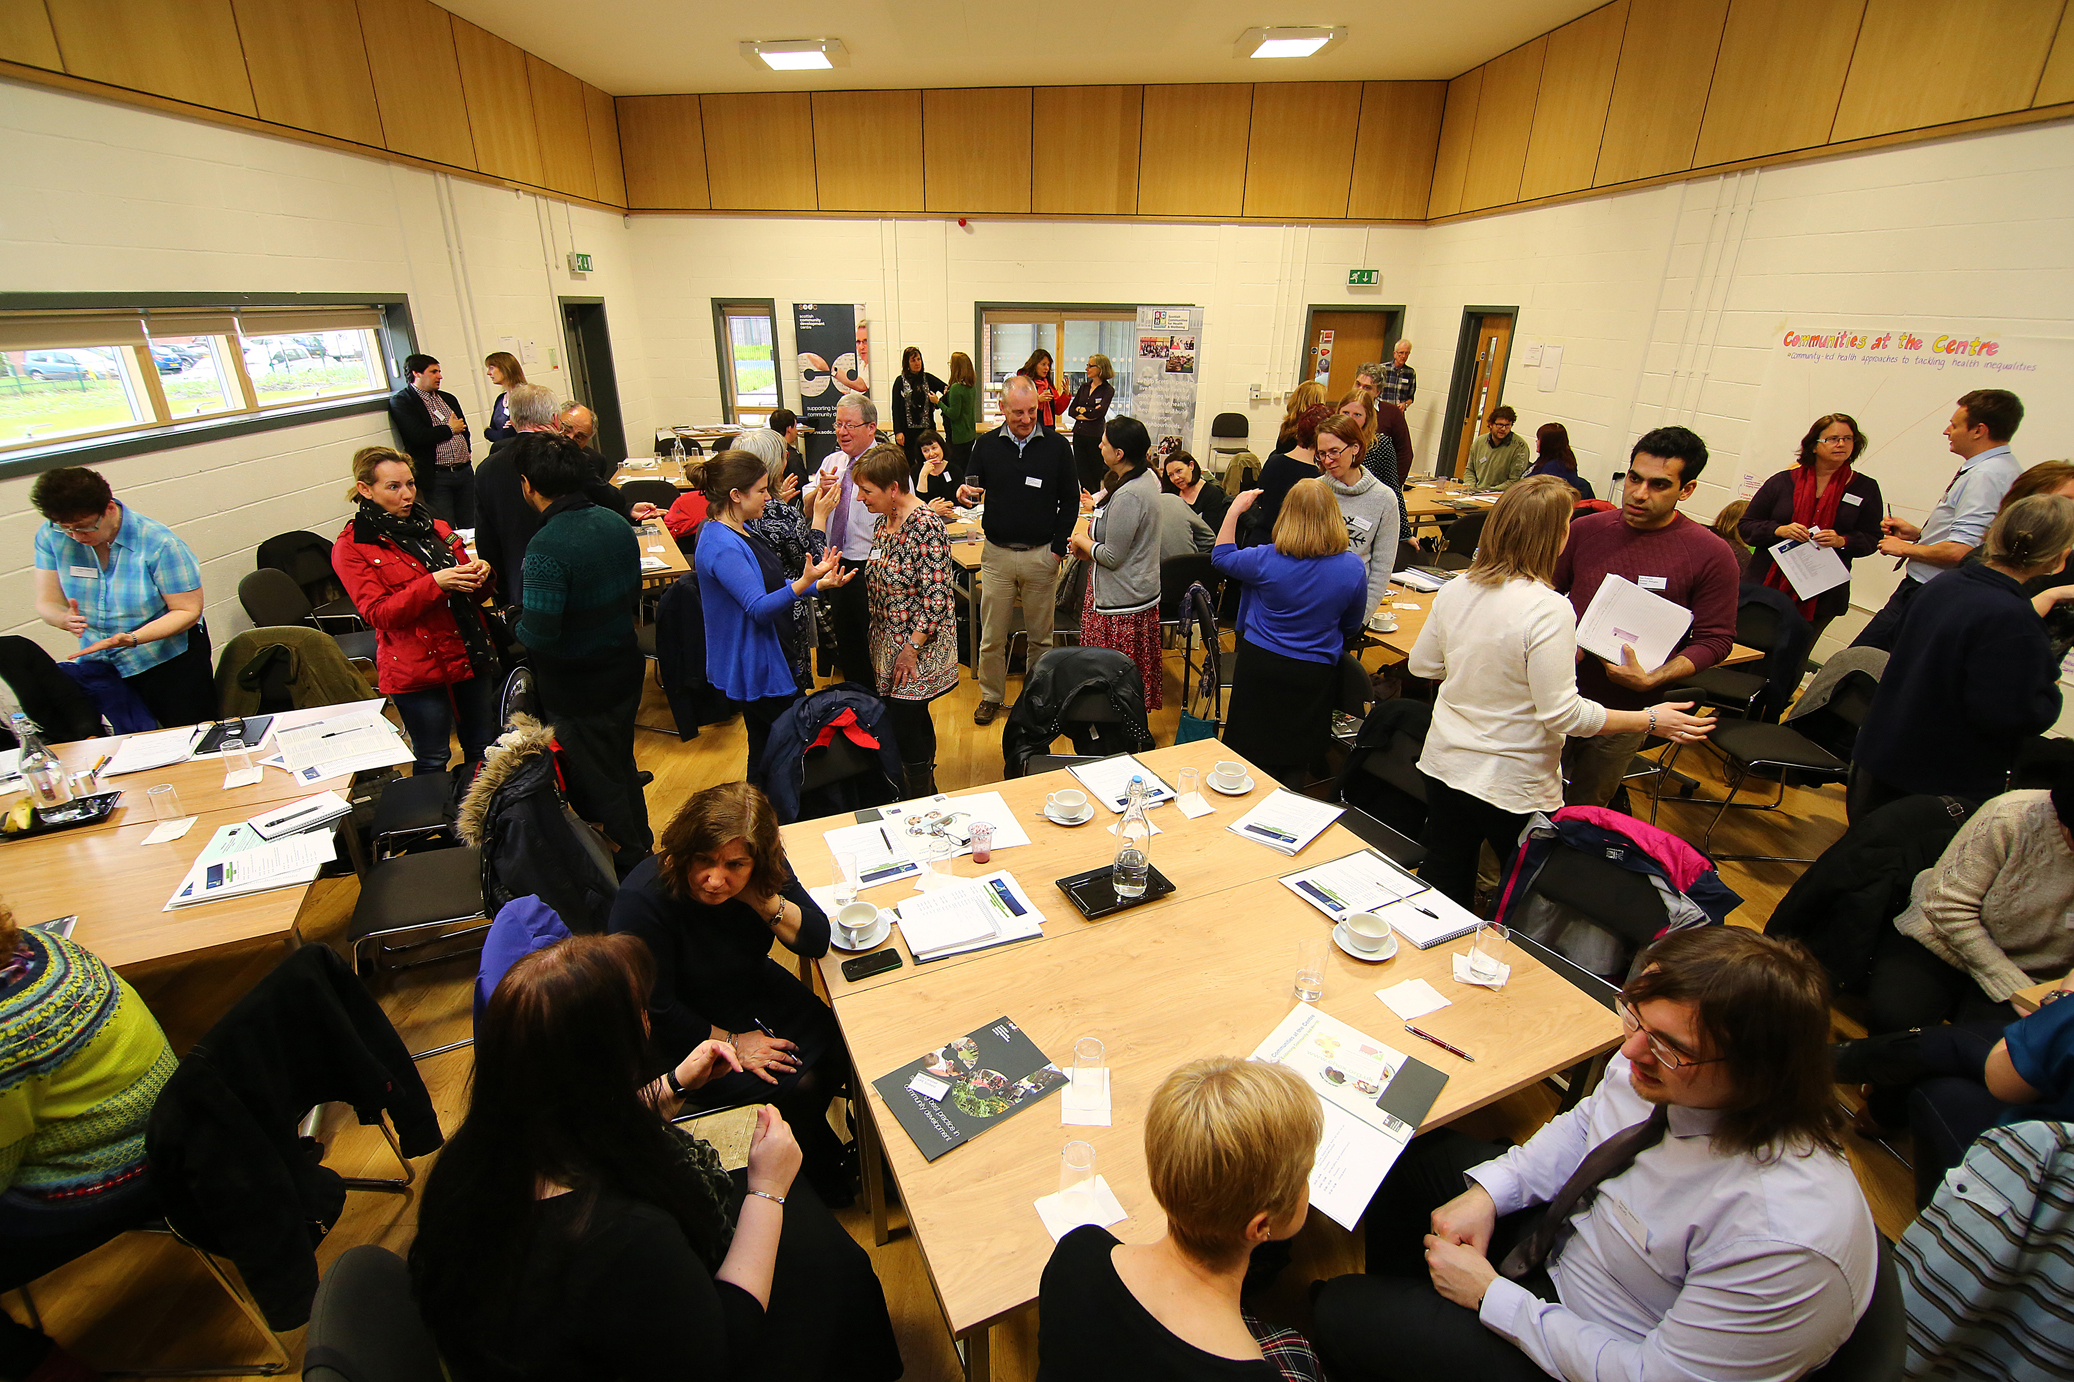 work effectively in the community sector